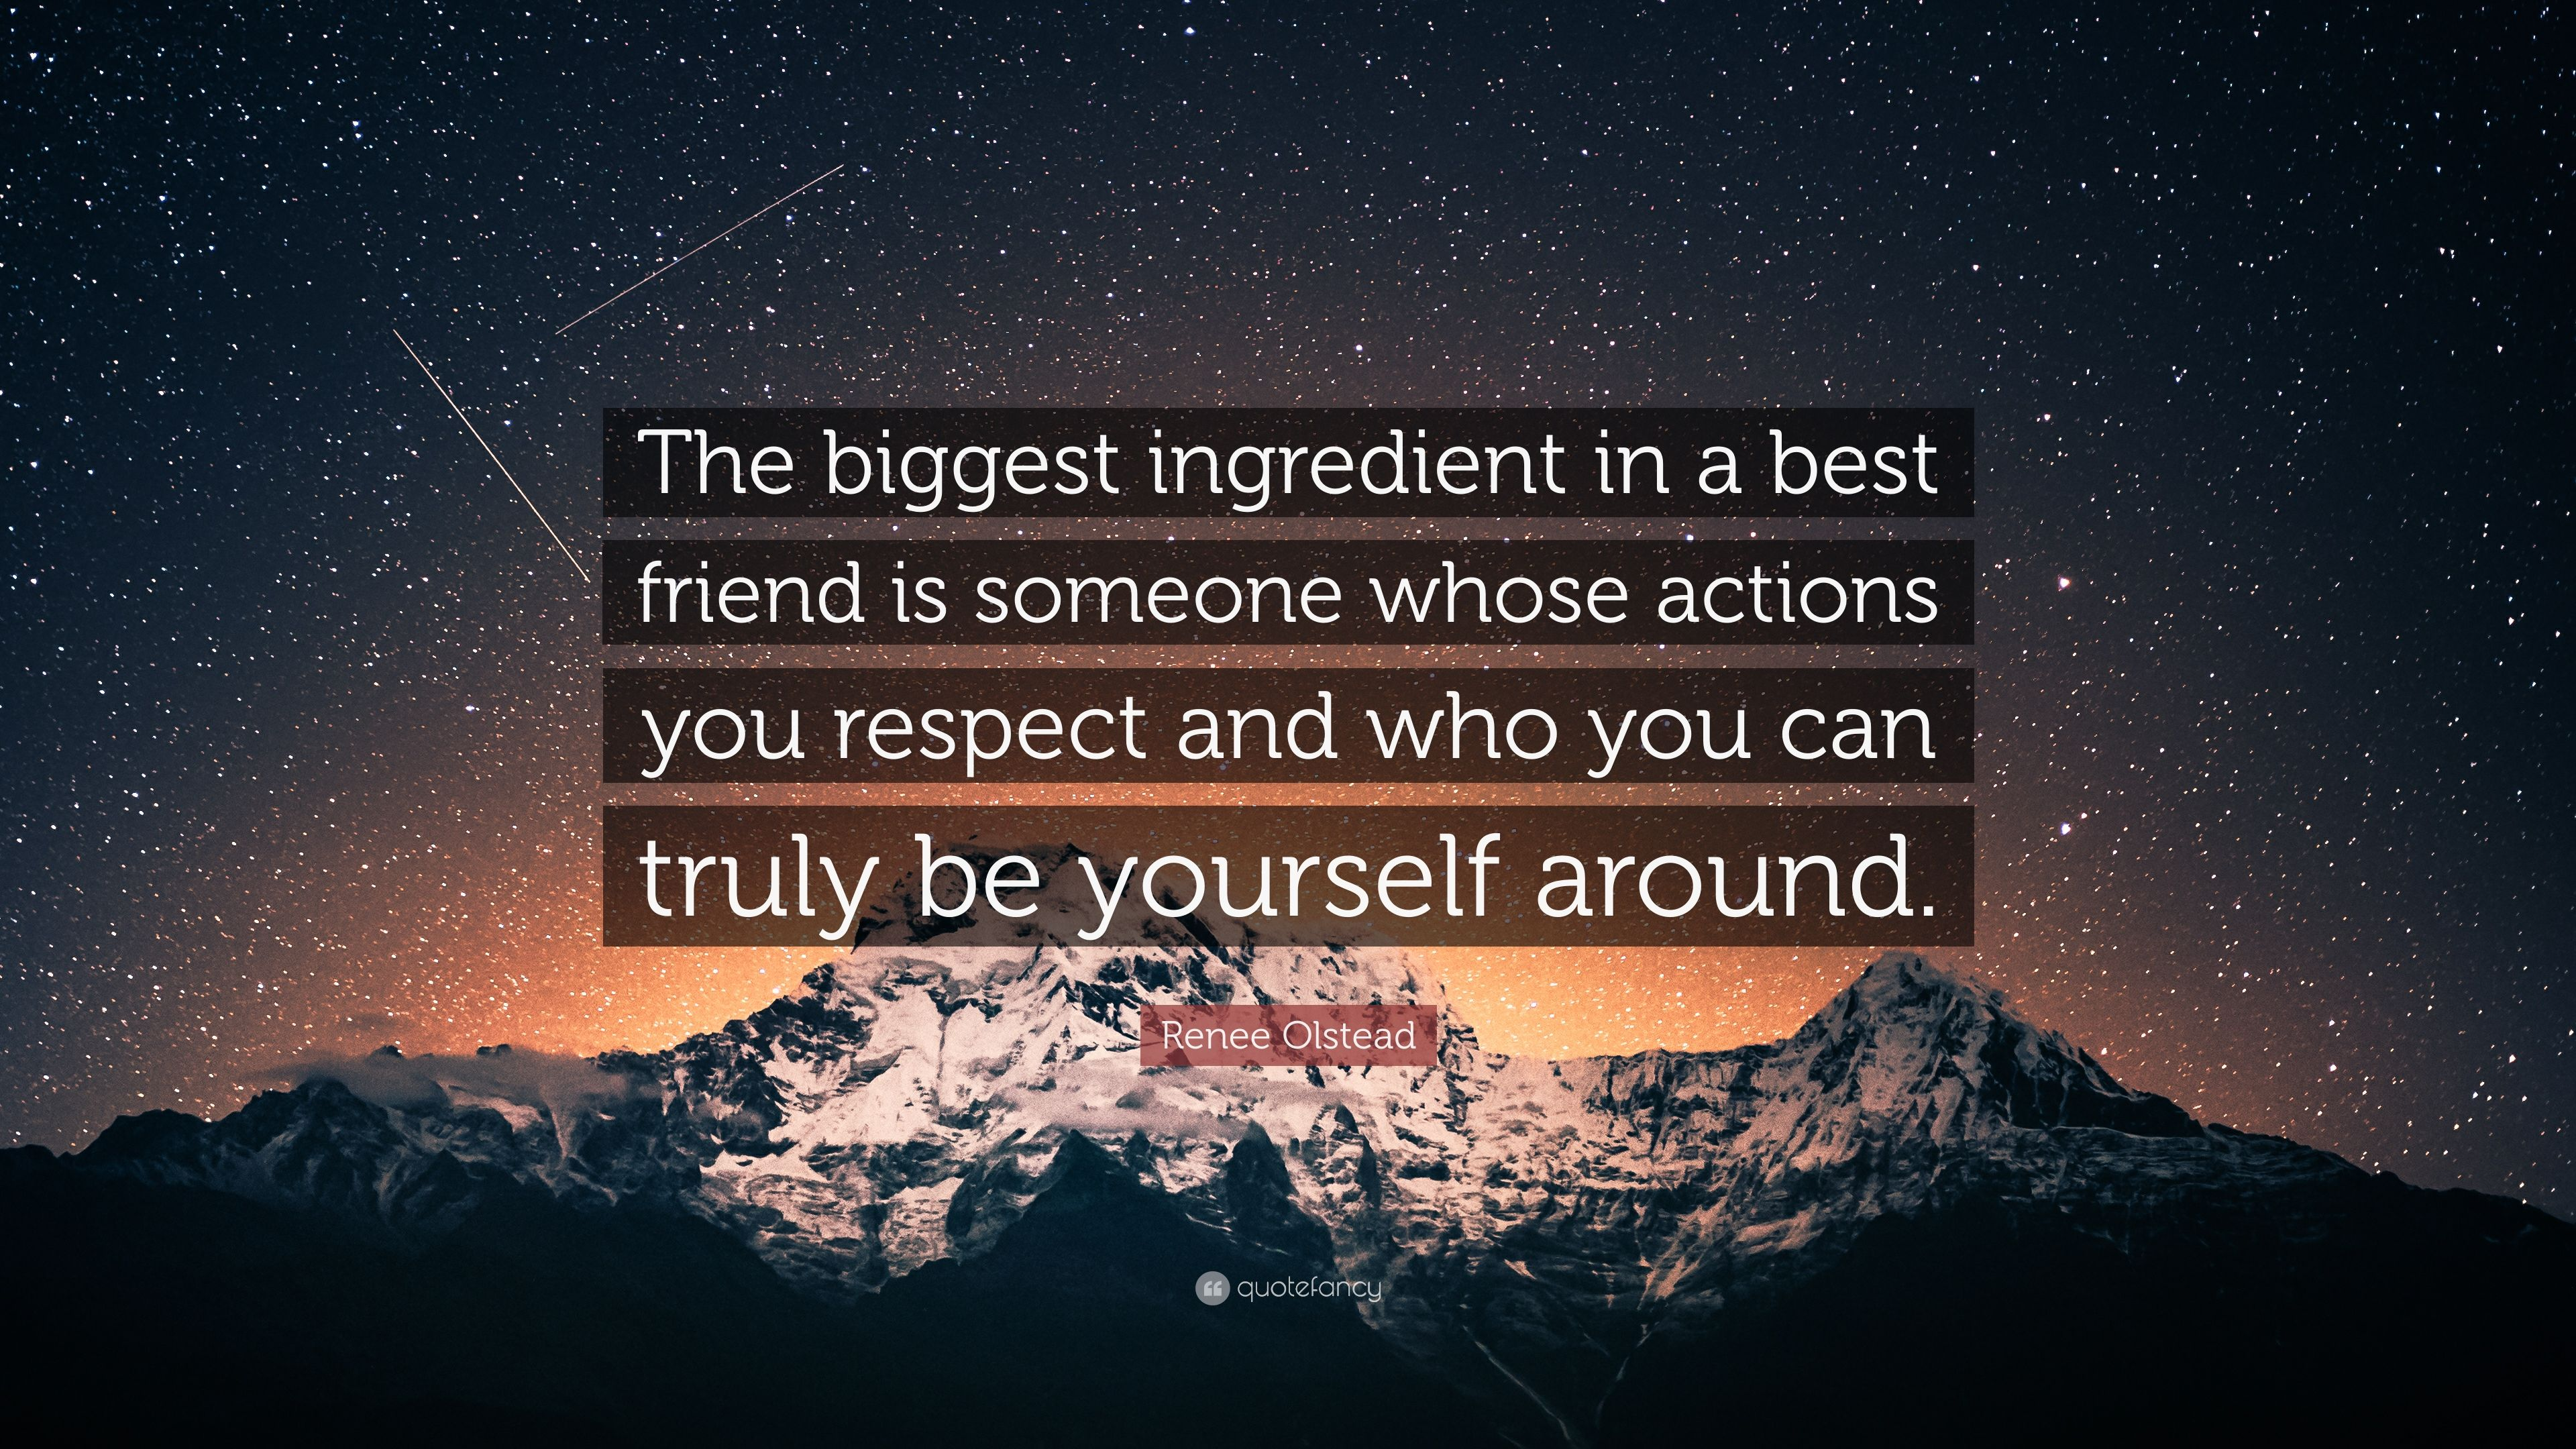 Renee Olstead Quote: U201cThe Biggest Ingredient In A Best Friend Is Someone  Whose Actions